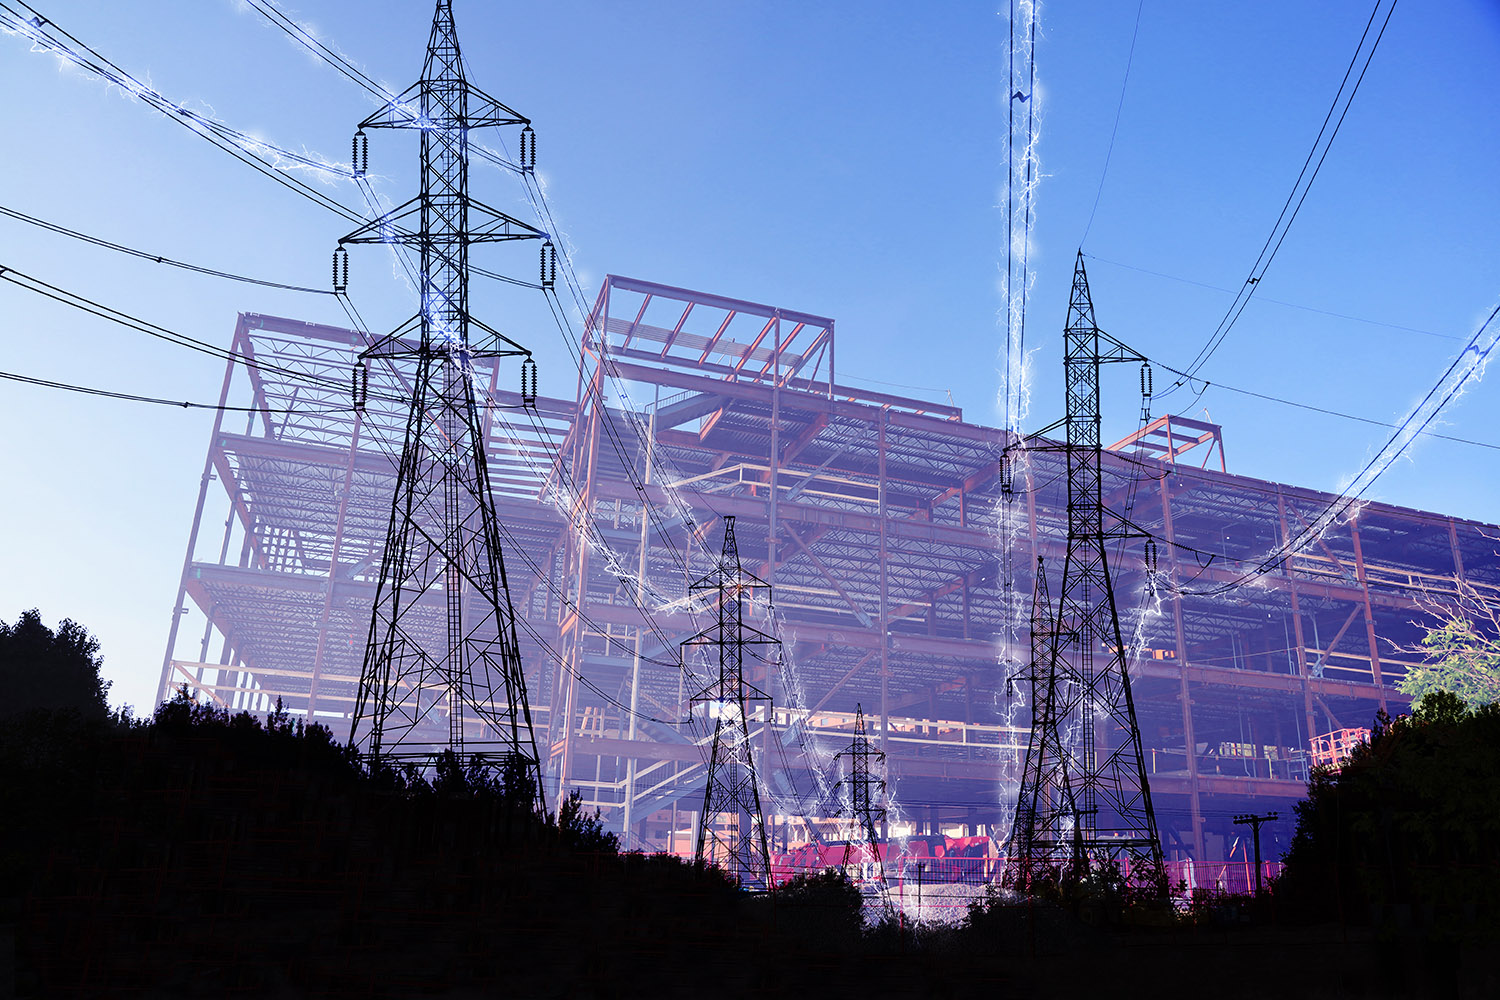 Construction Industry Electrification in Blue - Royalty-Free Stock Imagery